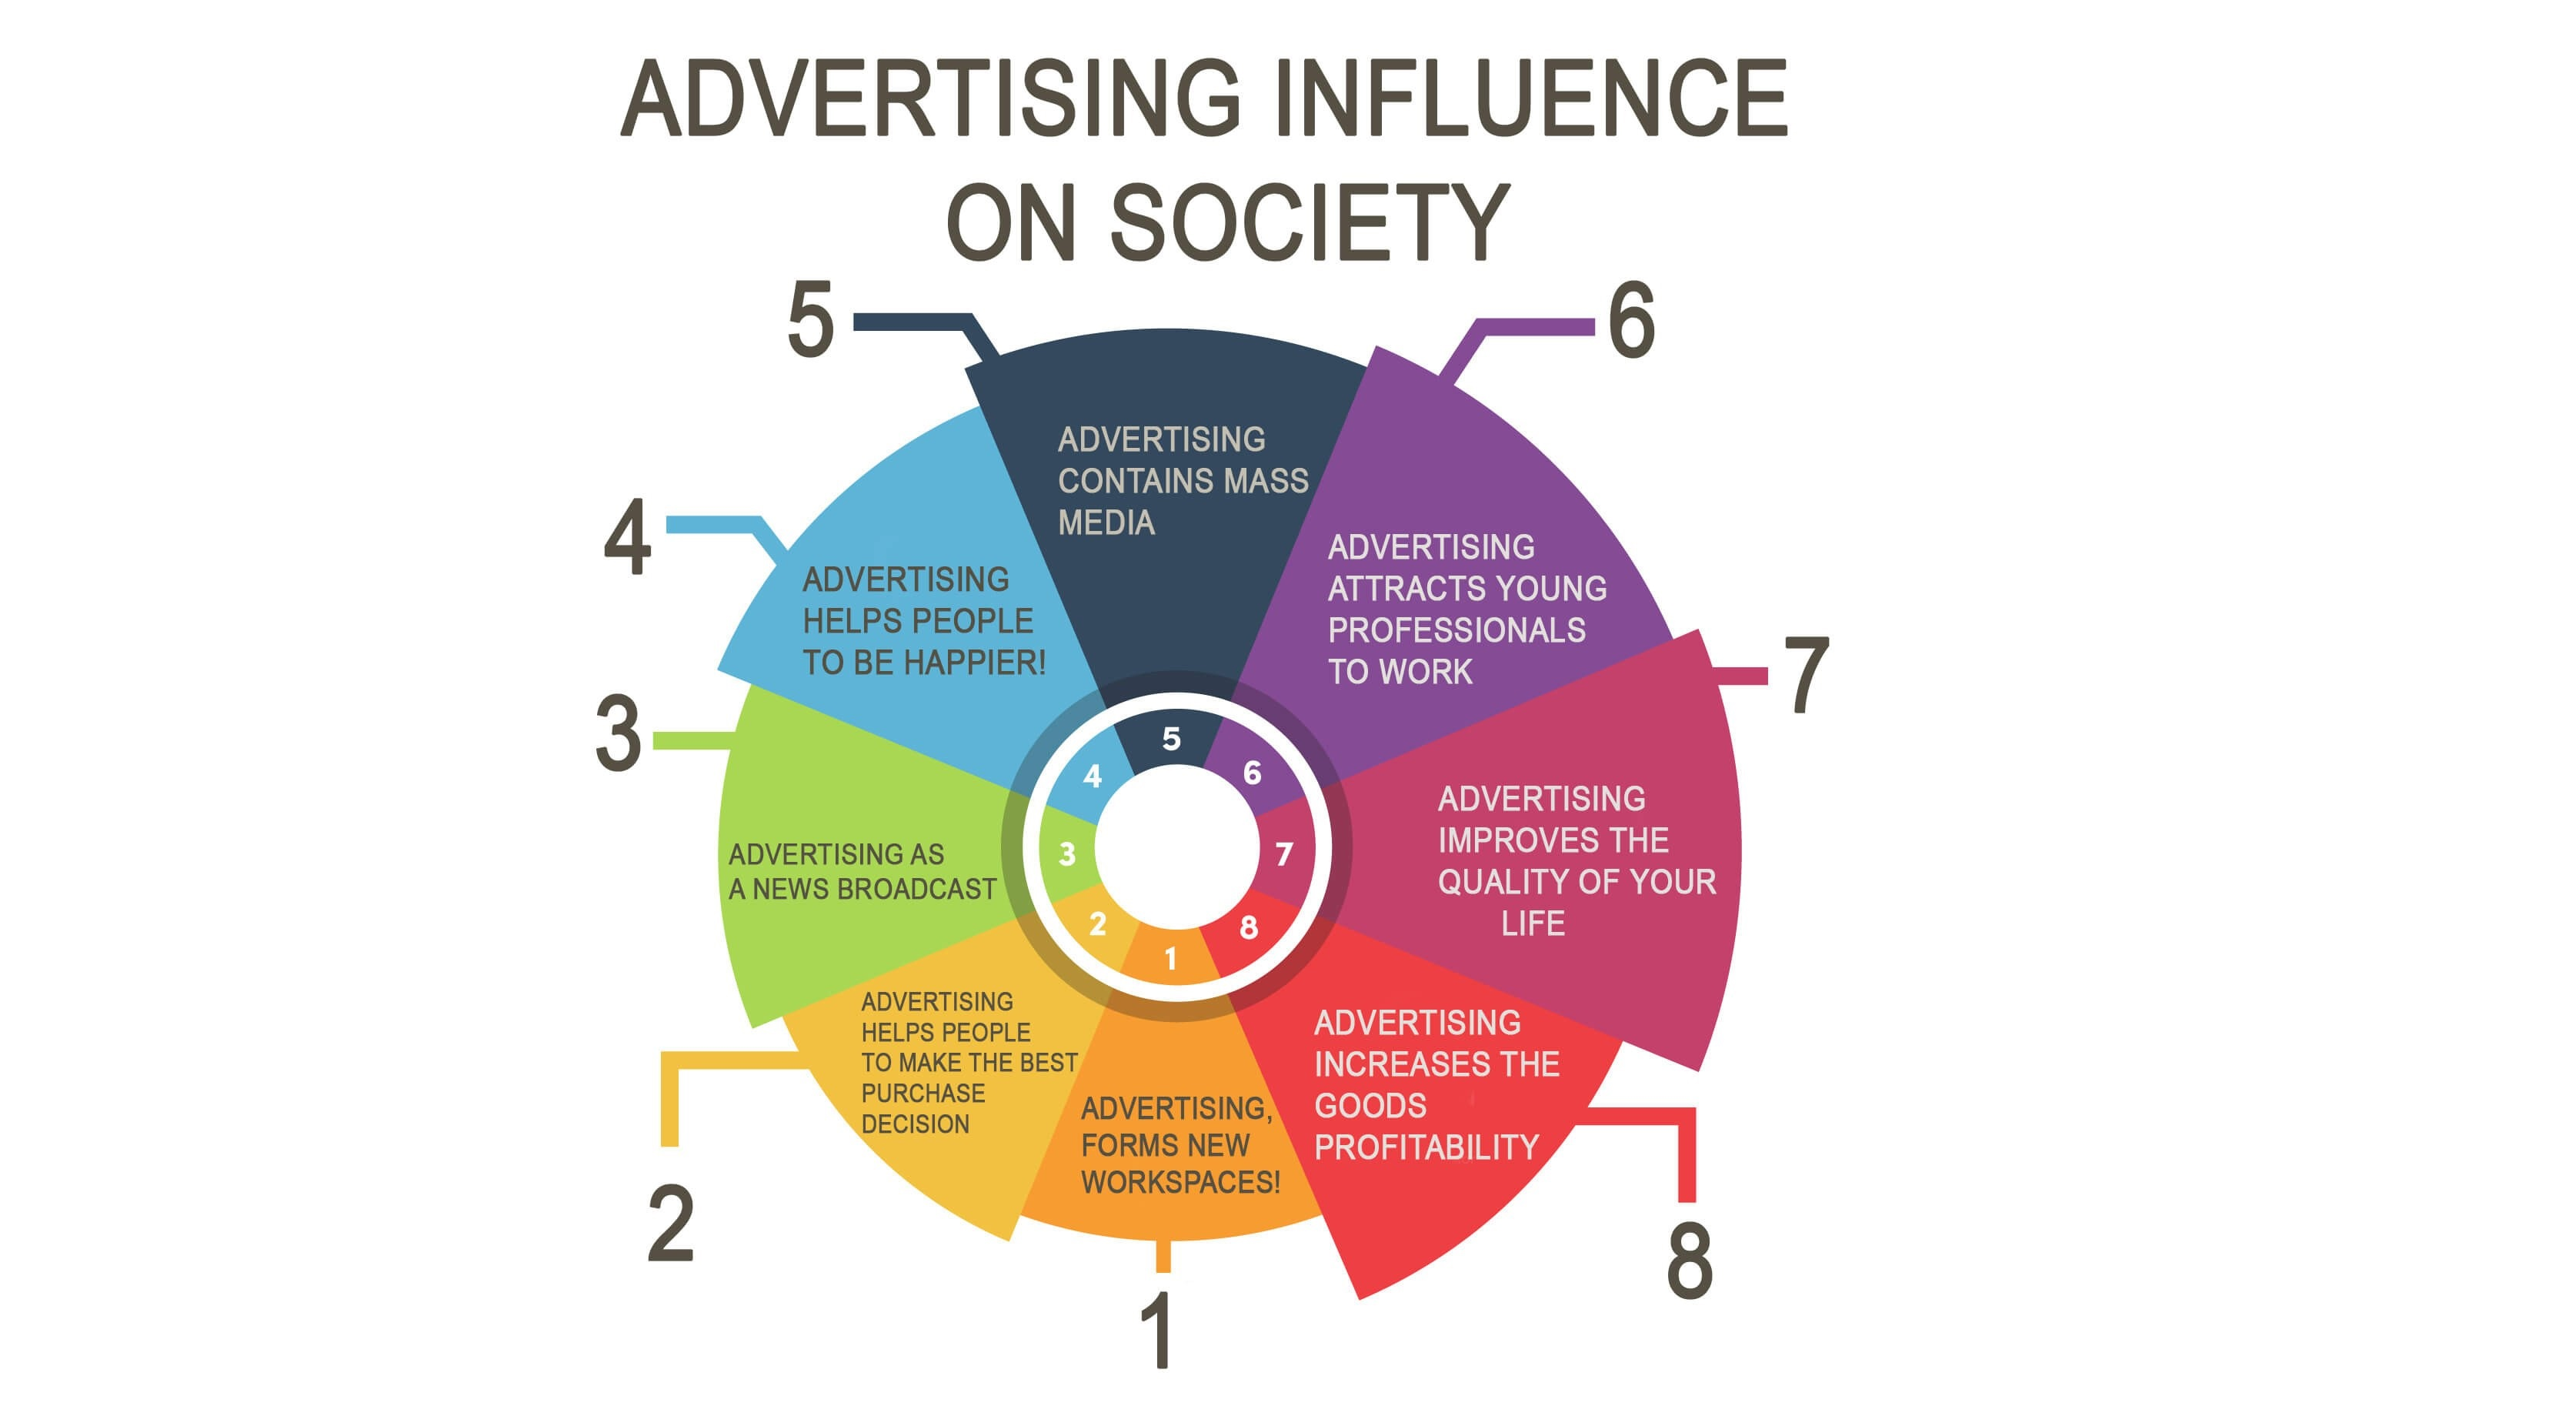 marketing and advertisement influence on society essay